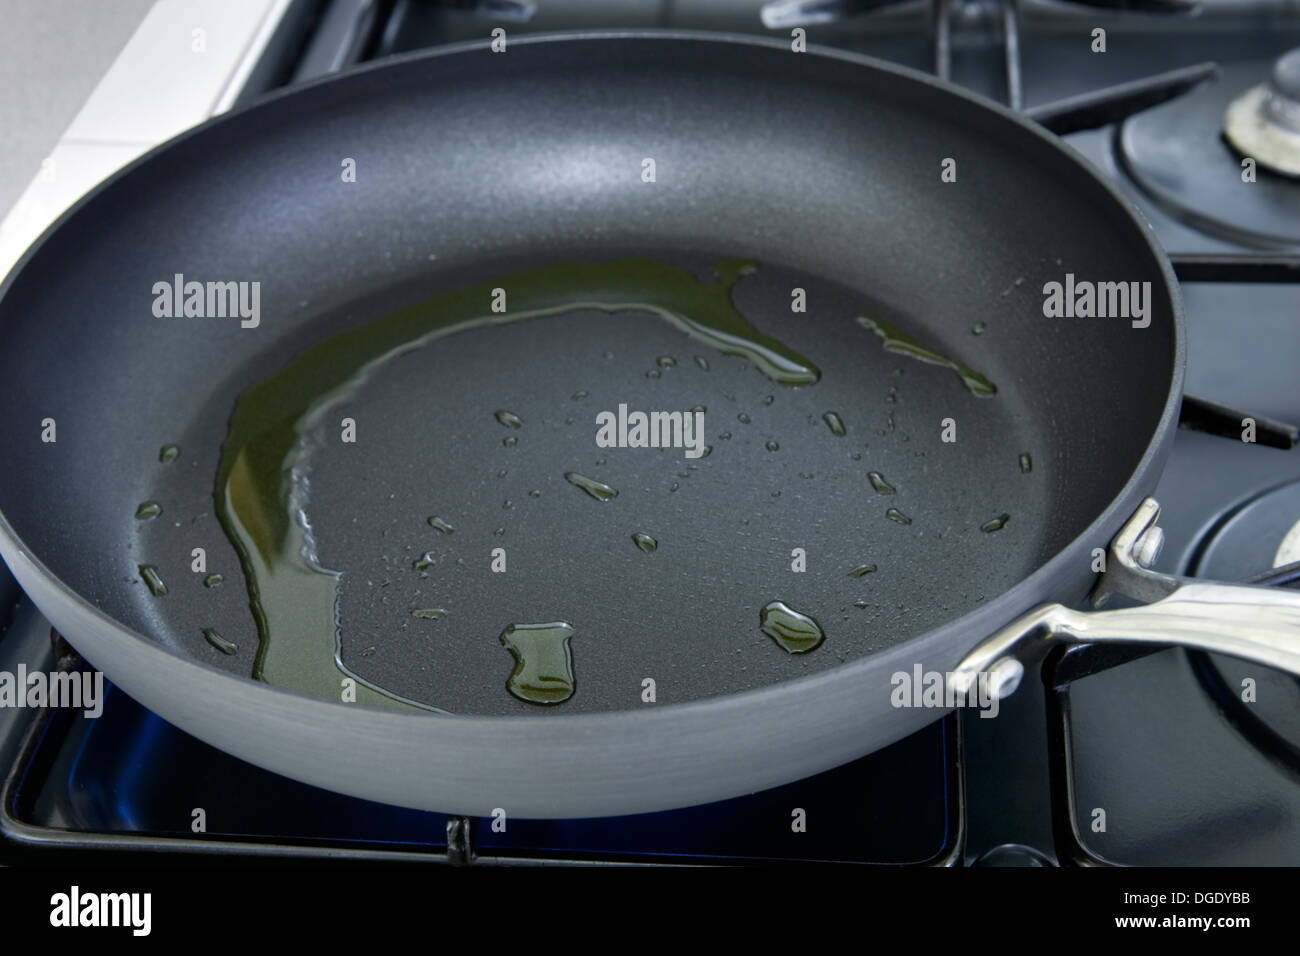 Olive oil heating in frying pan on stove - Stock Image